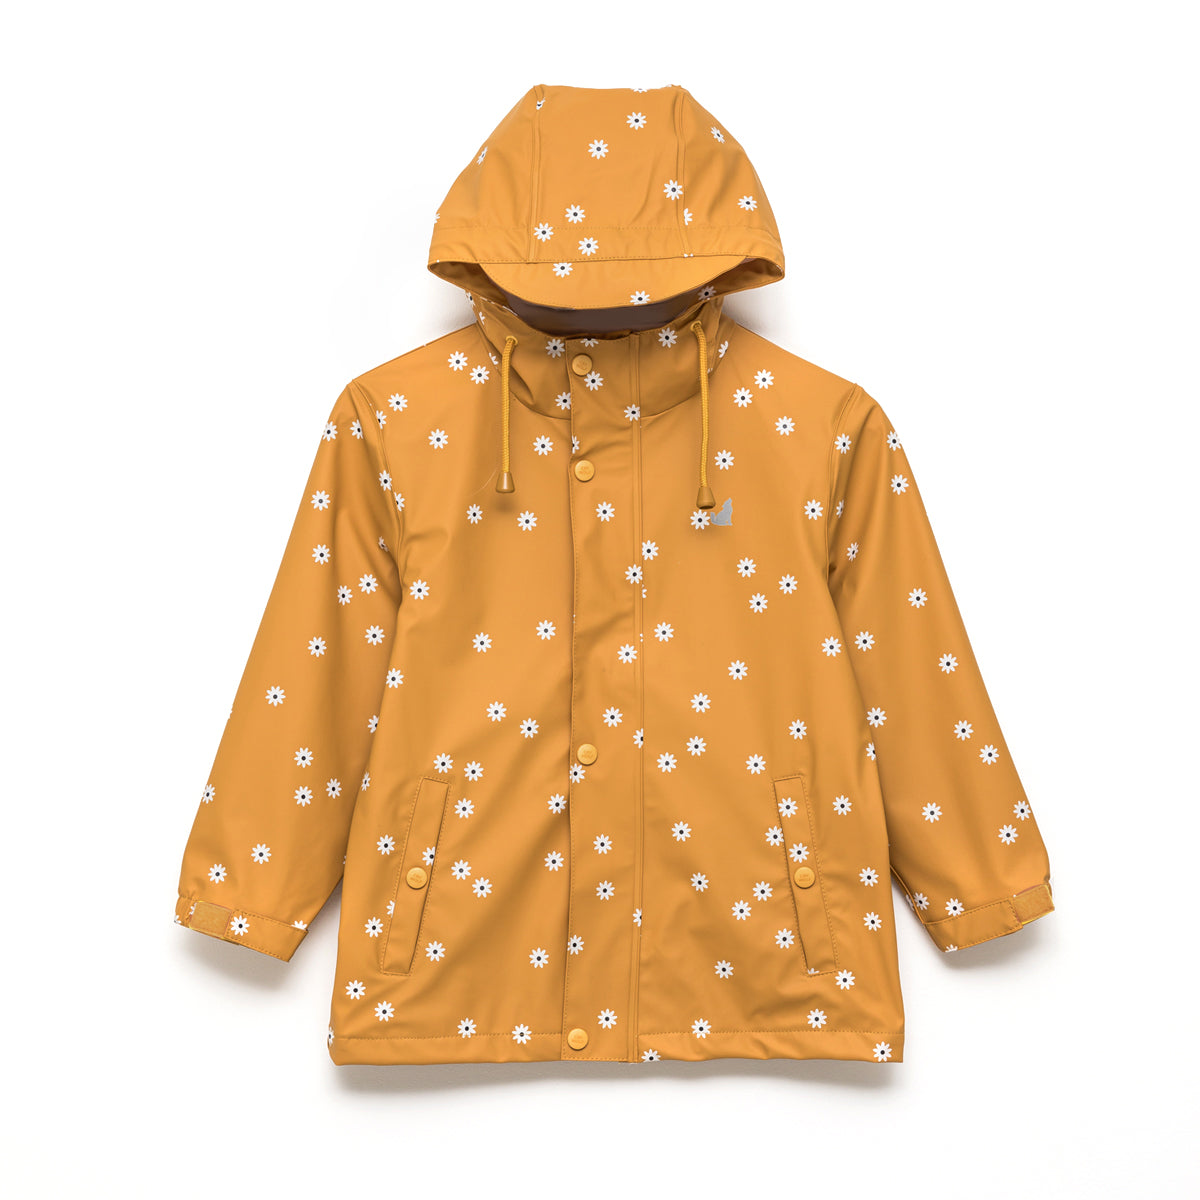 Girls Play Rain Jacket Wild Flower